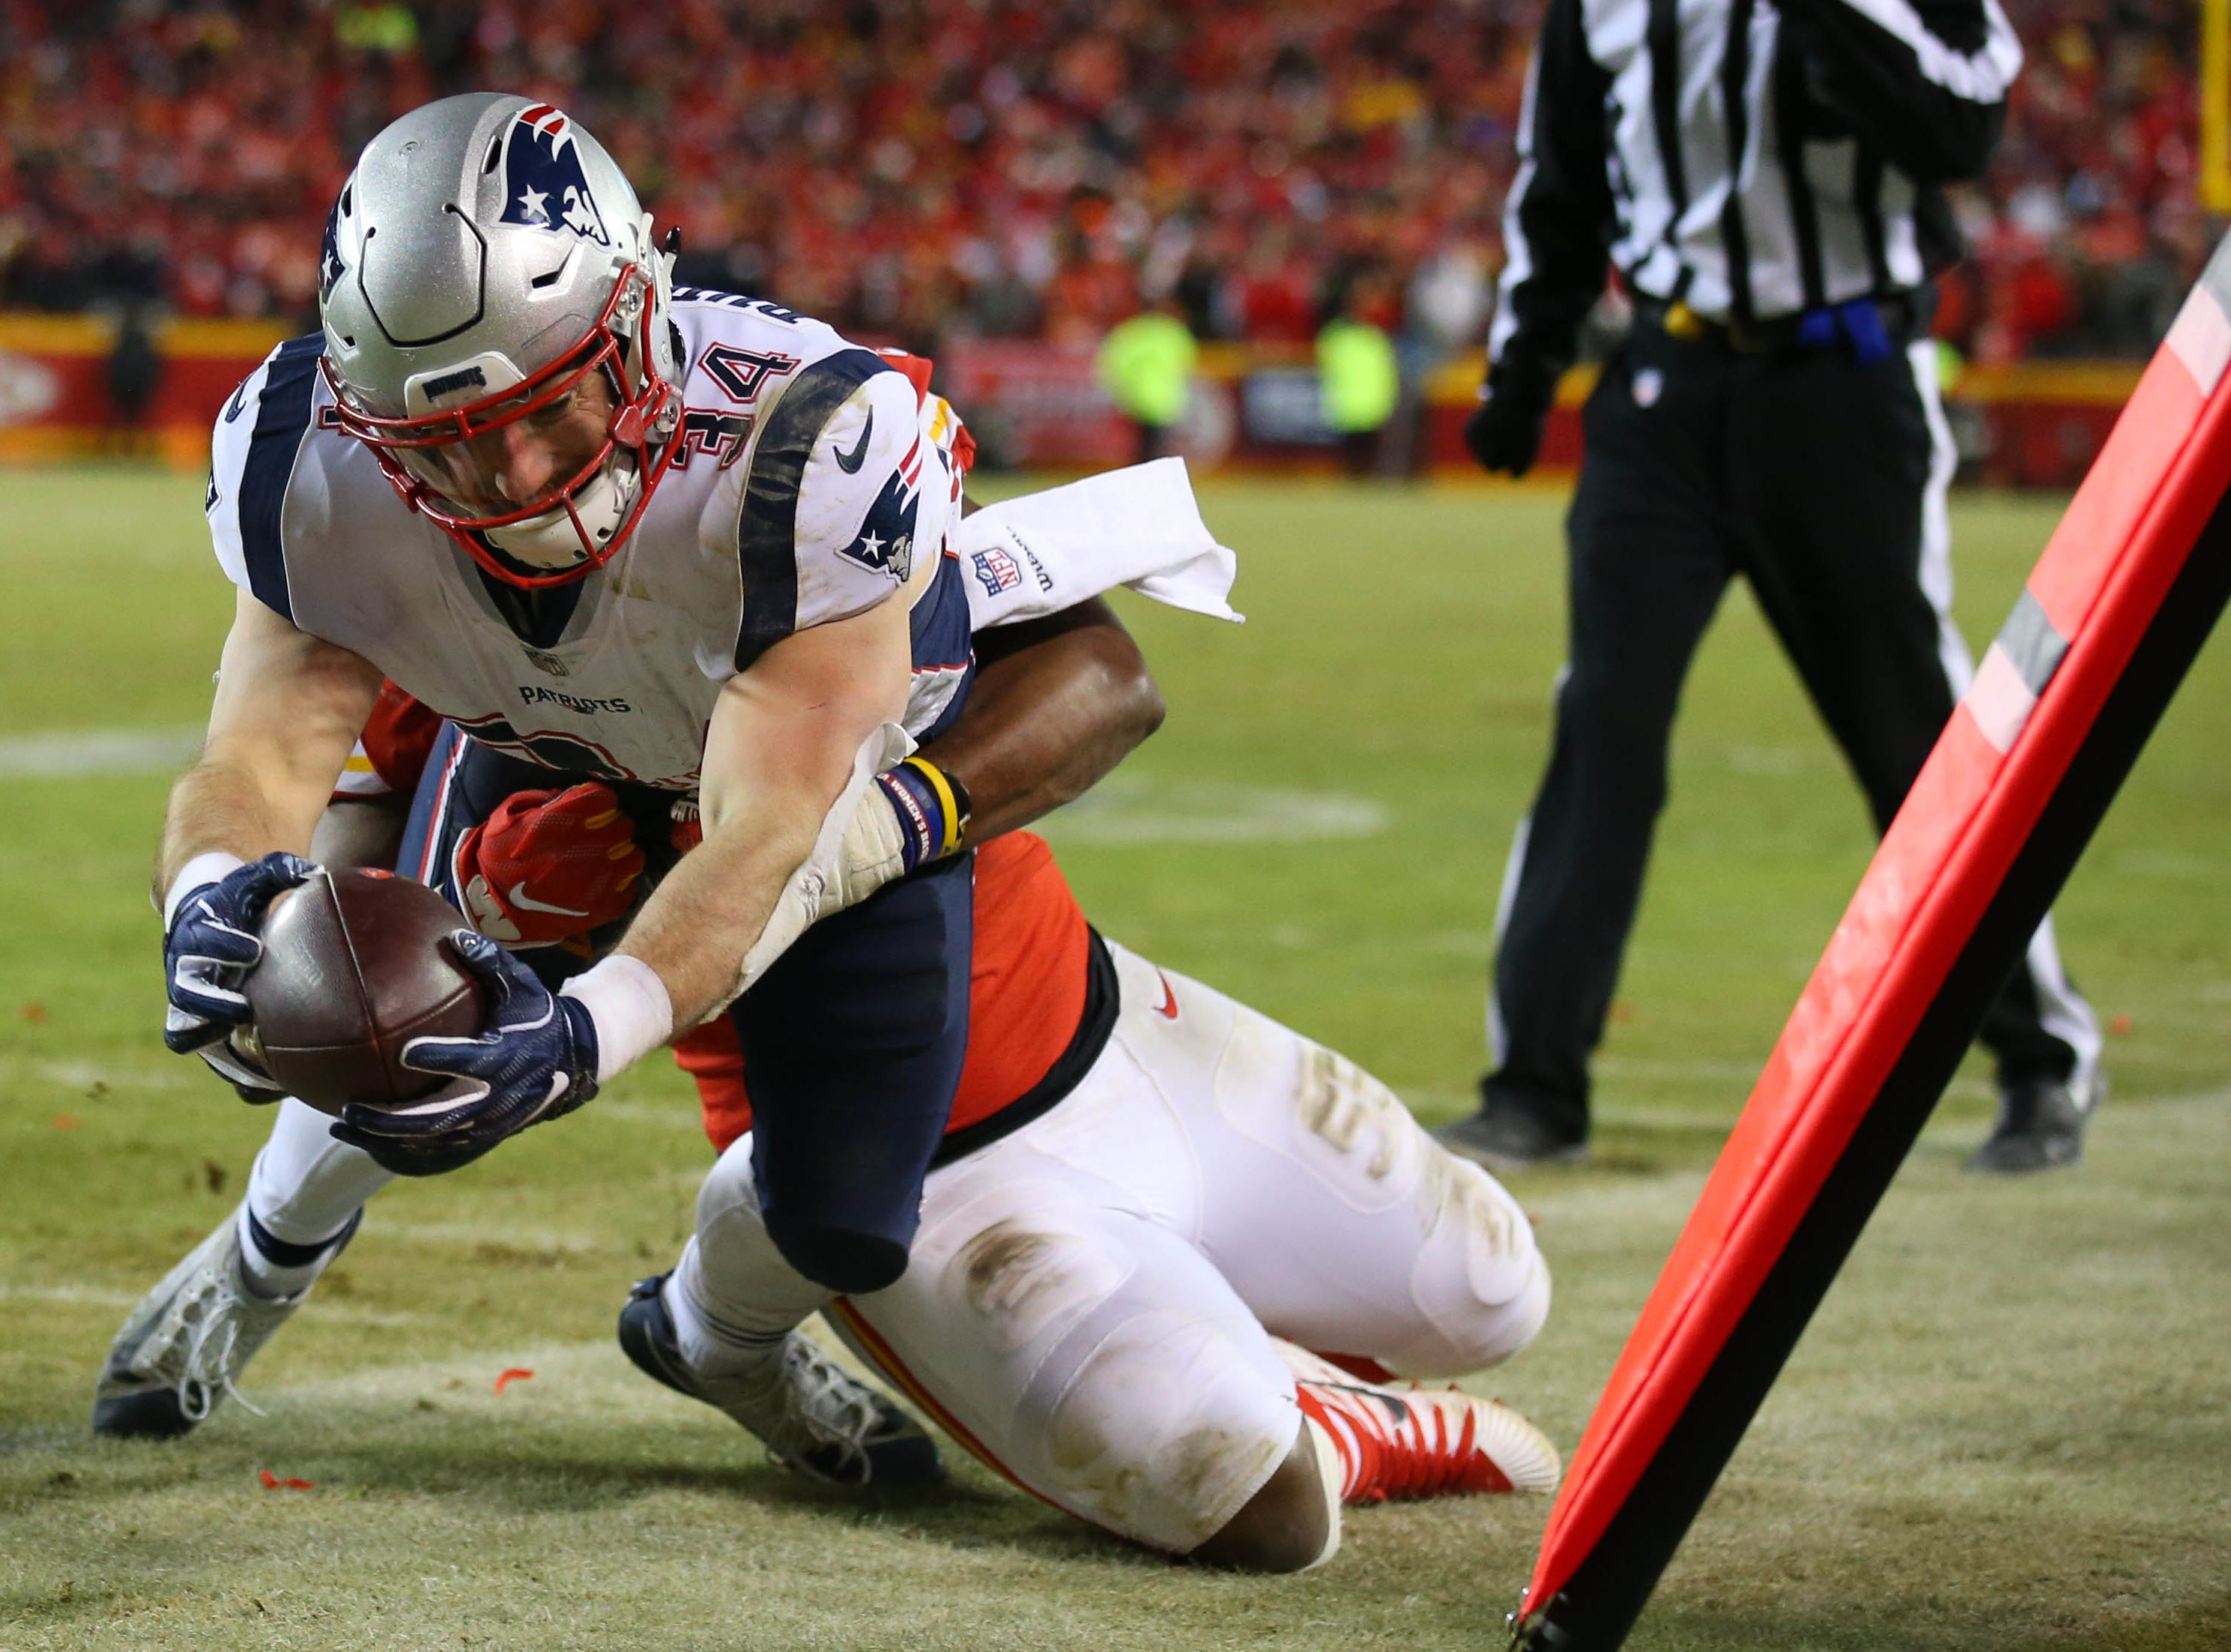 New England Patriots running back Rex Burkhead (34) takes the ball out of bounds during the second half of the AFC Championship Game against the Kansas City Chiefs at Arrowhead Stadium.